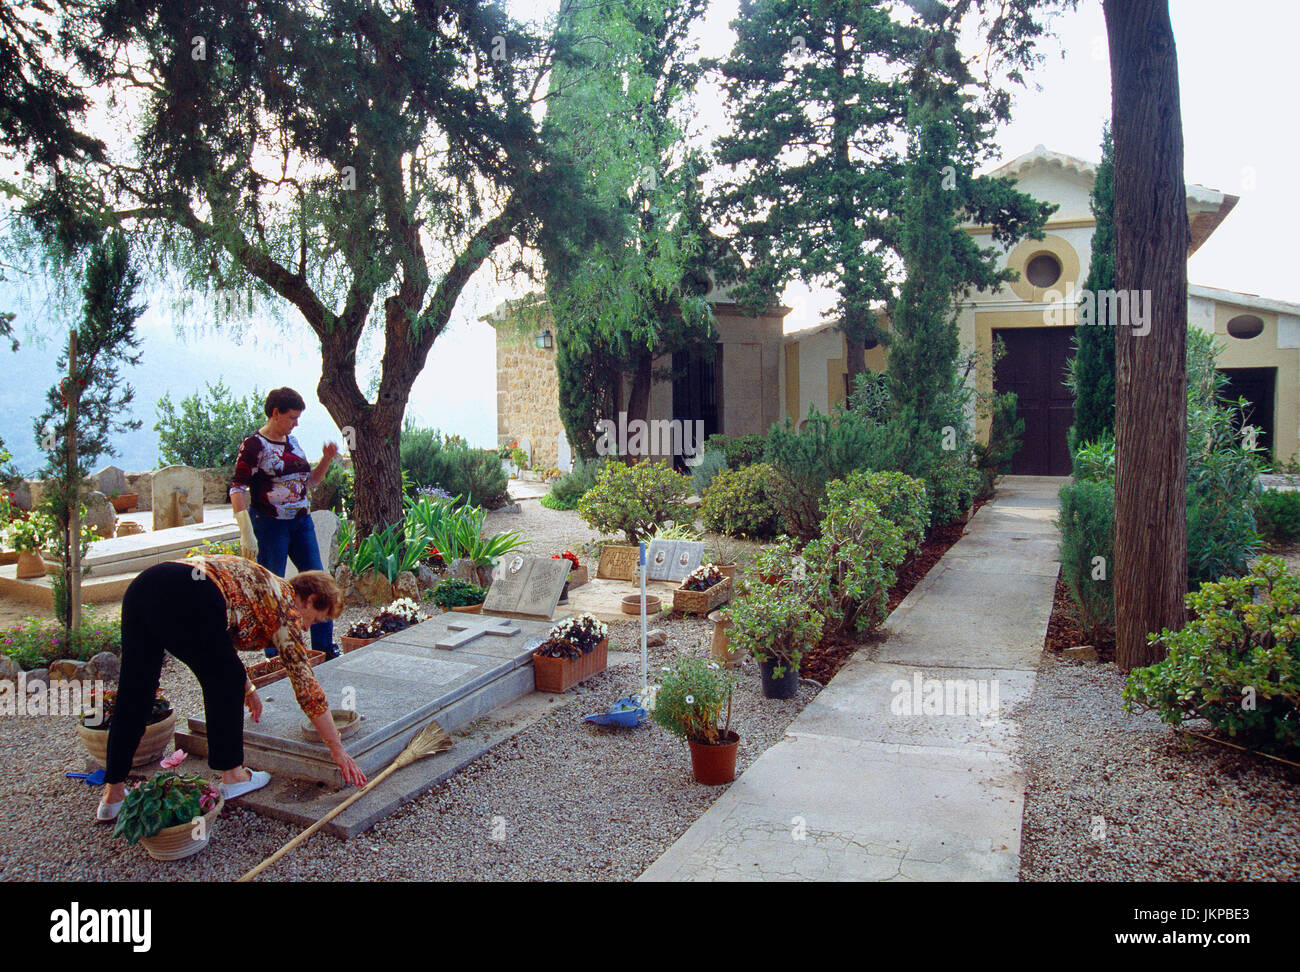 Two women working at the cemetery. Deia, Mallorca island, Balearic Islands, Spain. - Stock Image